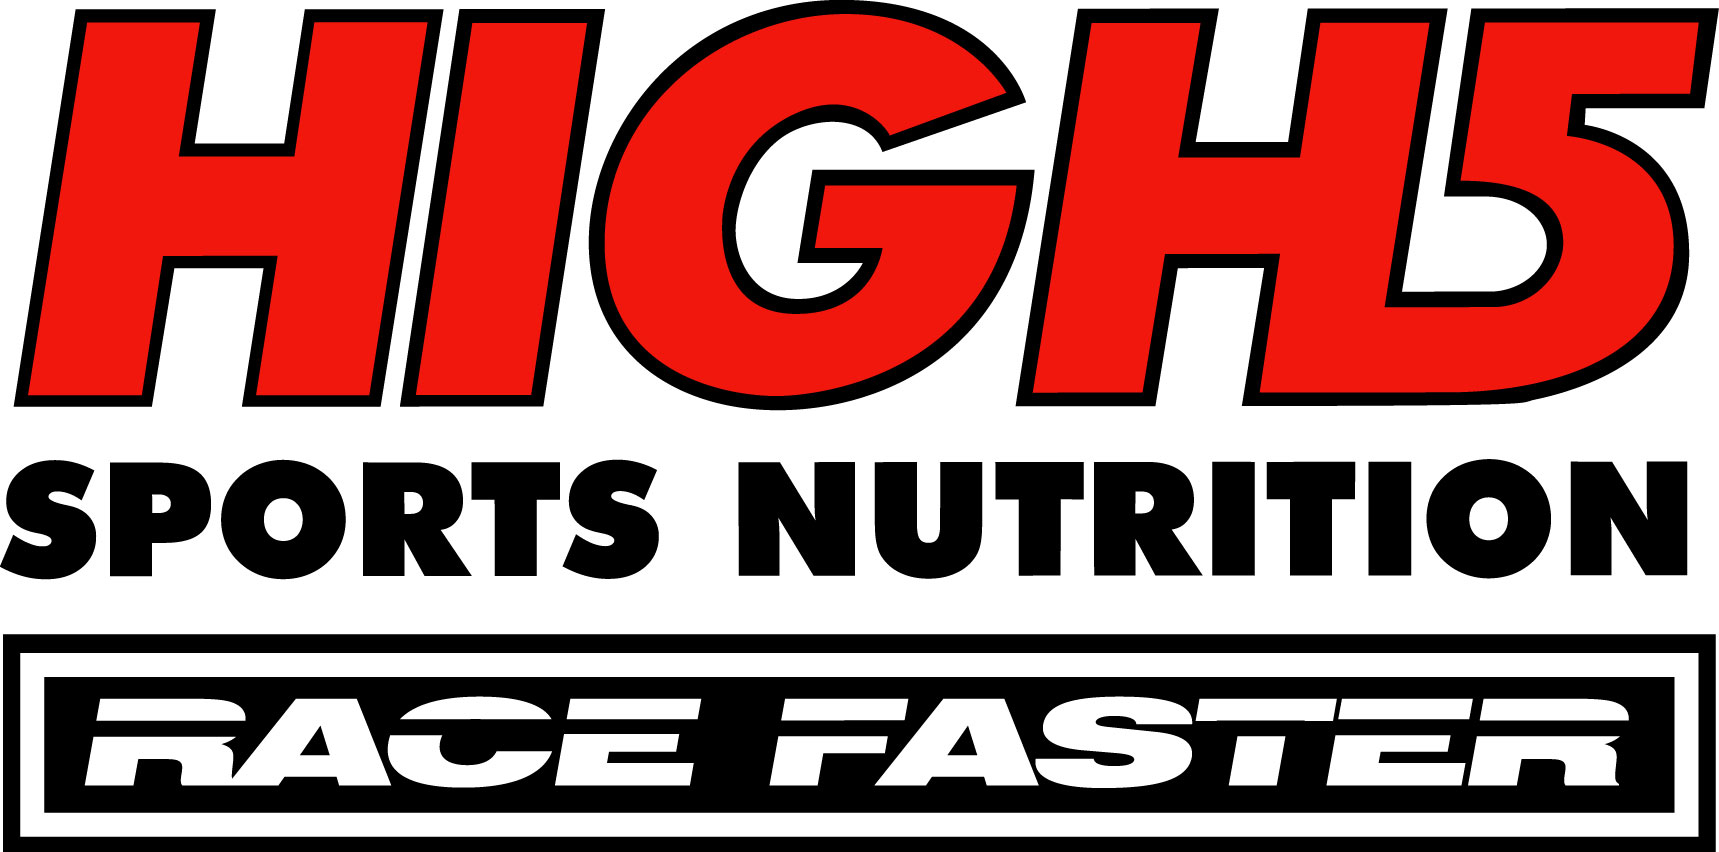 High5 logo with race faster-2.jpg